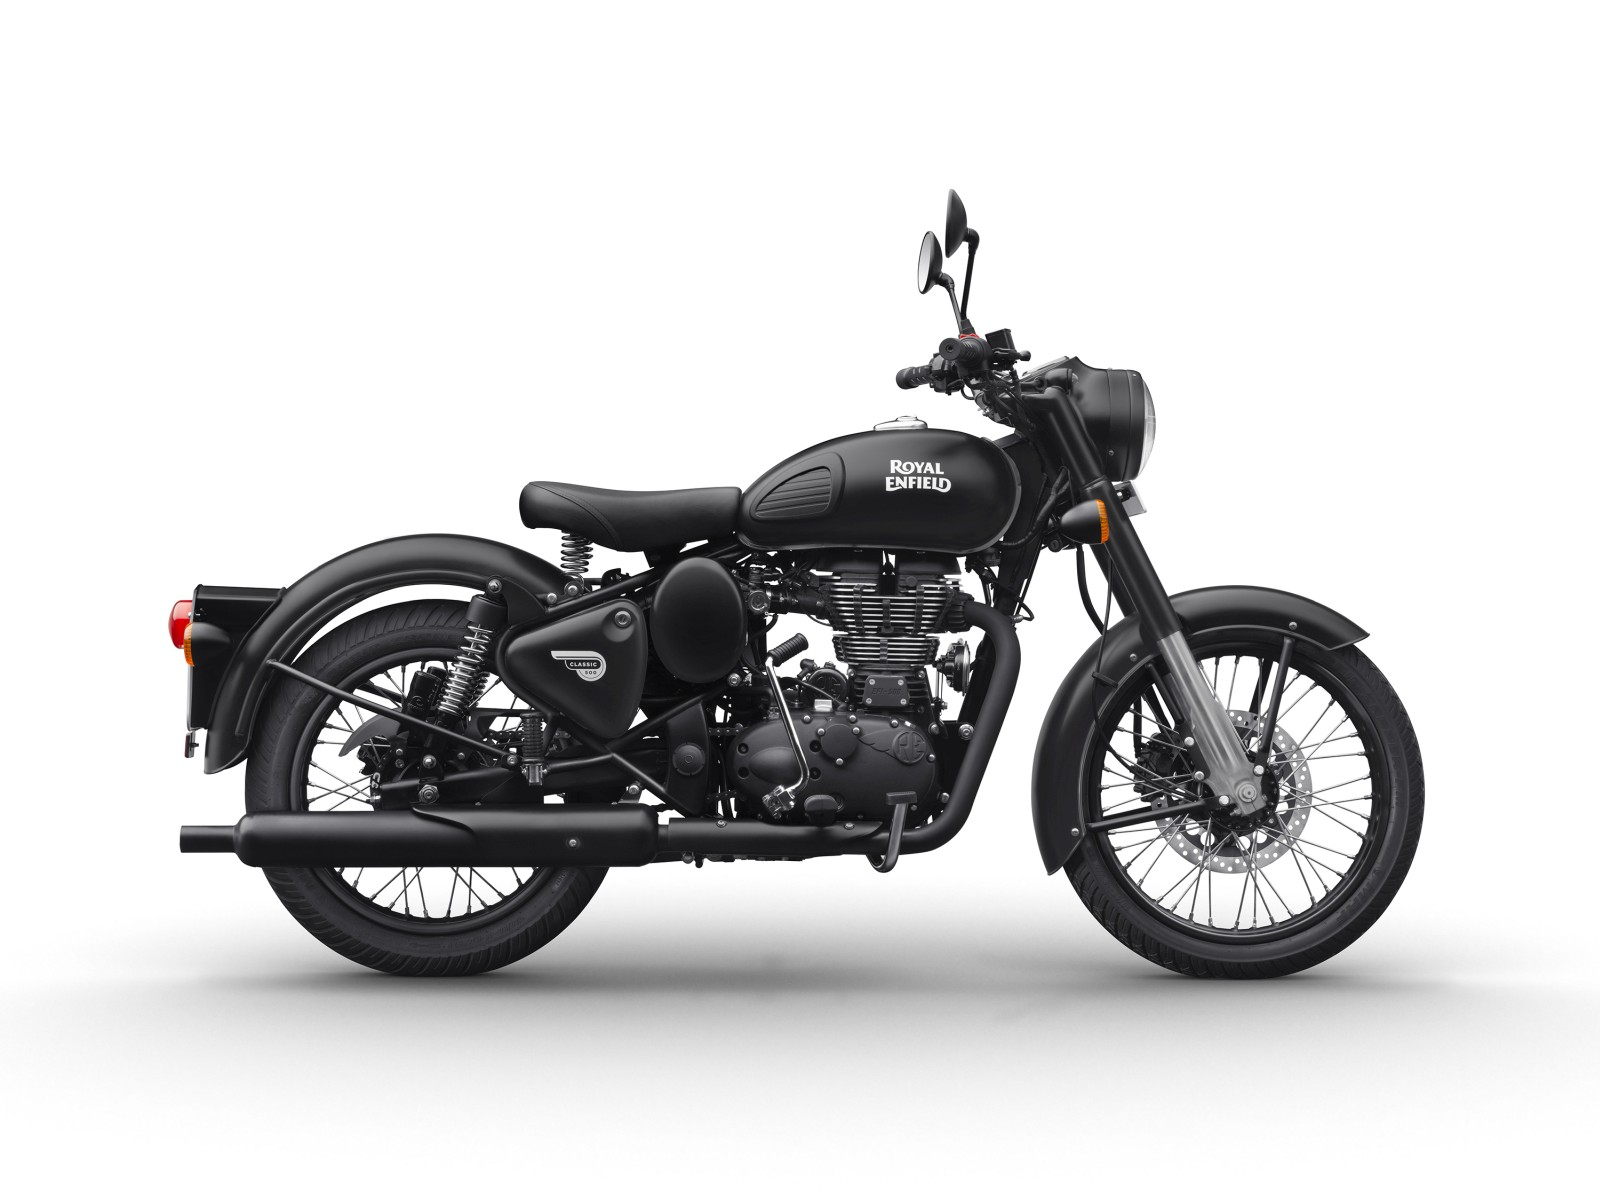 Royal Enfield Classic 500 Price In India Mileage Specifications Motoroids